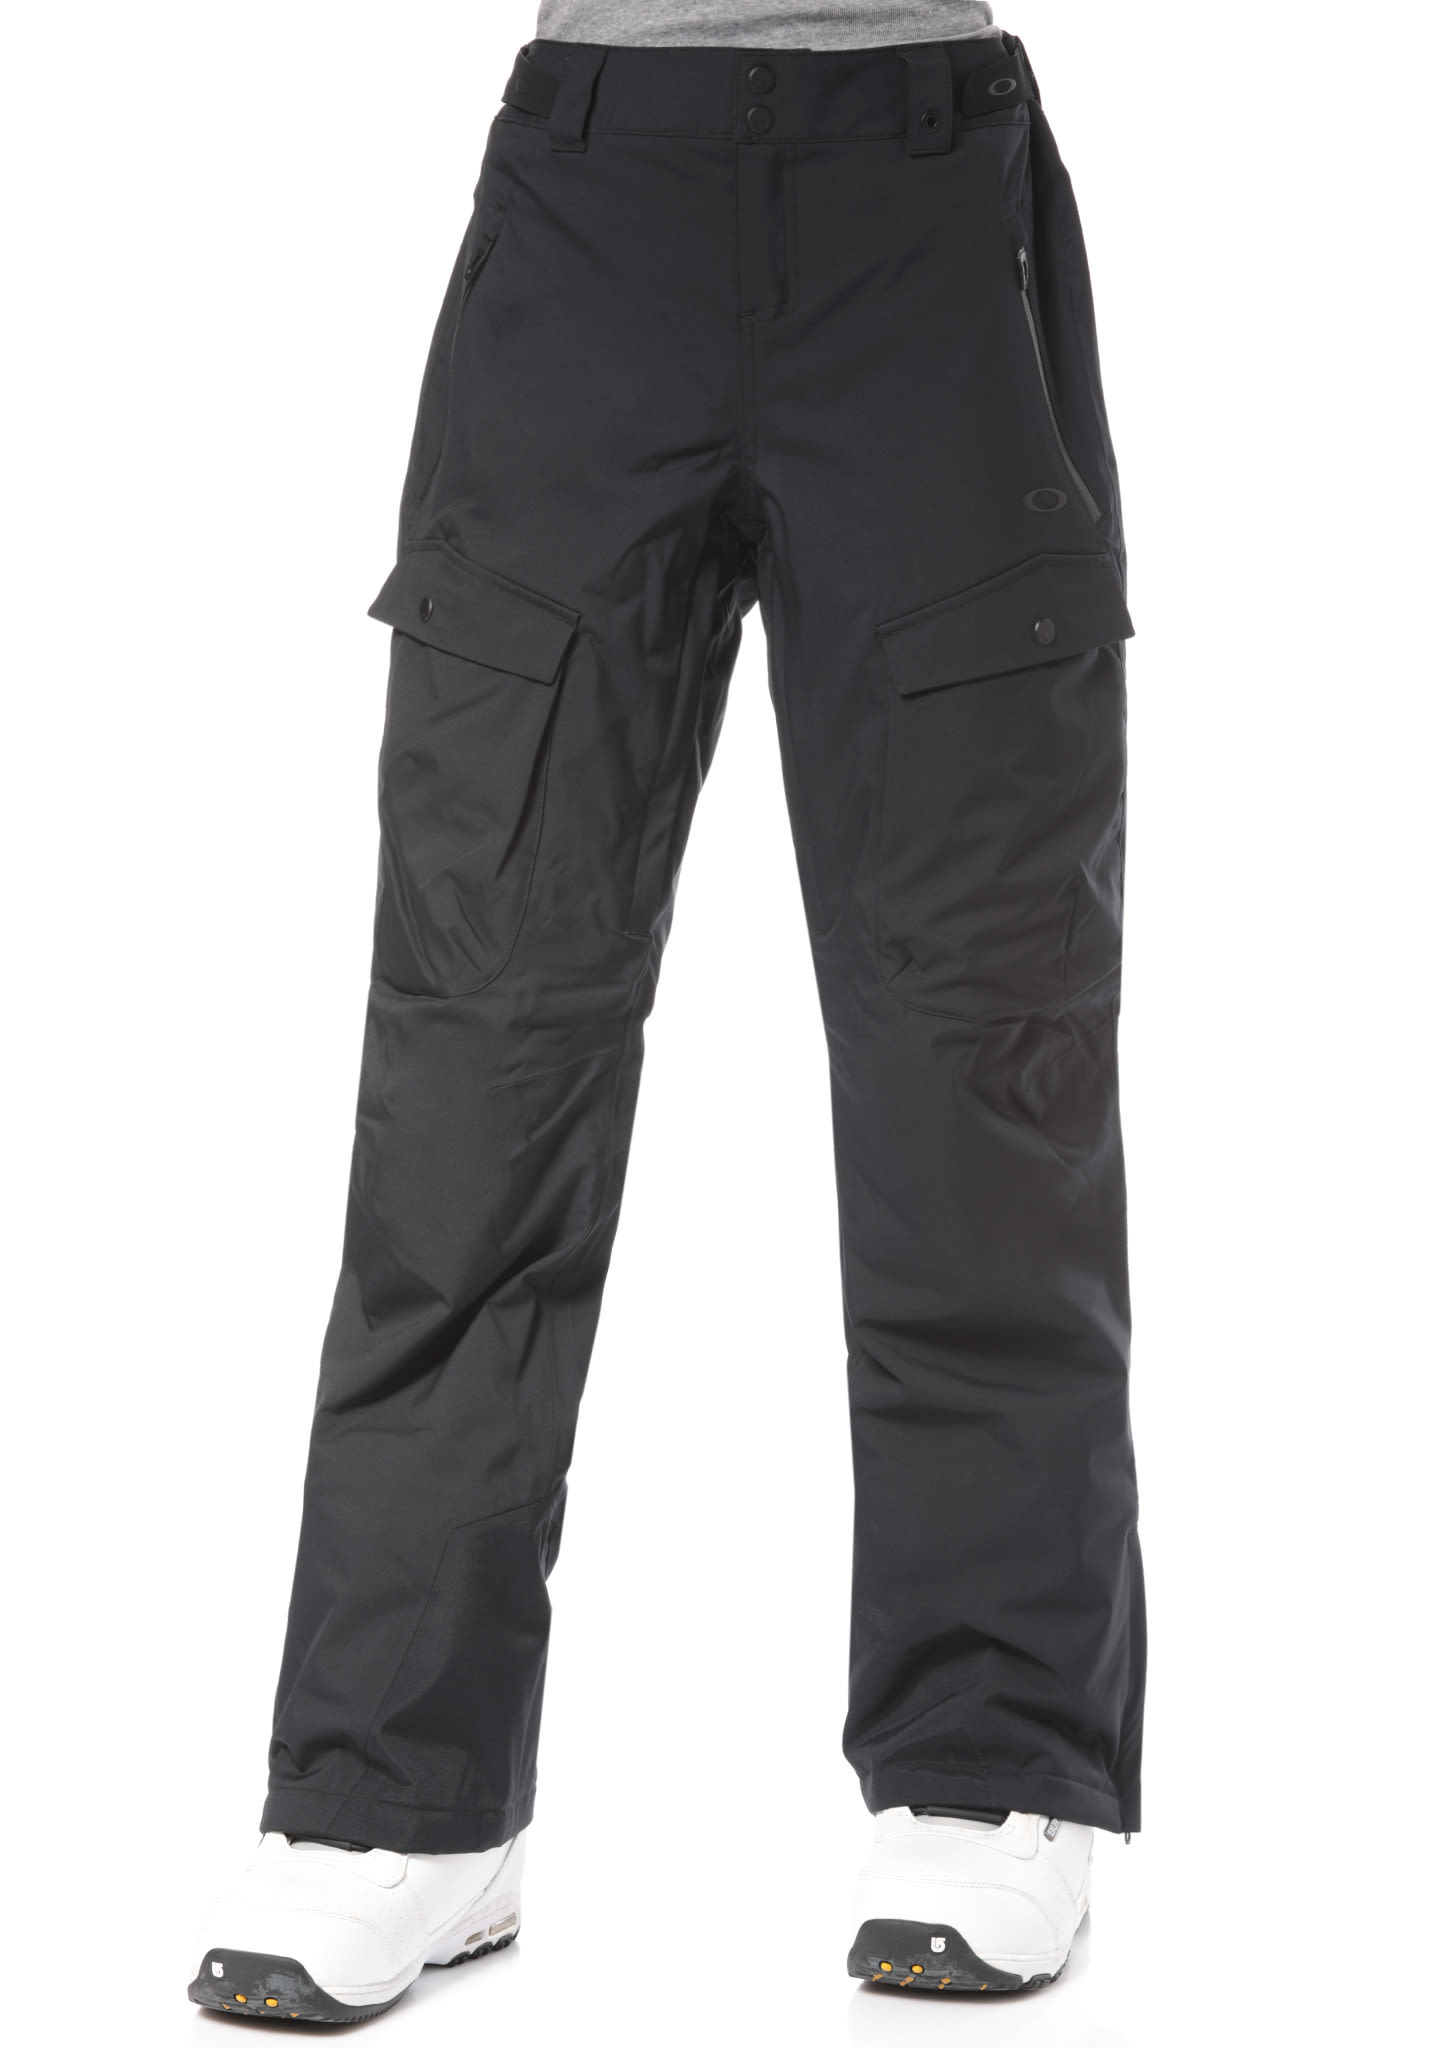 acc8959ad5 OAKLEY Snow Insulated 10K  2L - Snowboard Pants for Women - Black - Planet  Sports